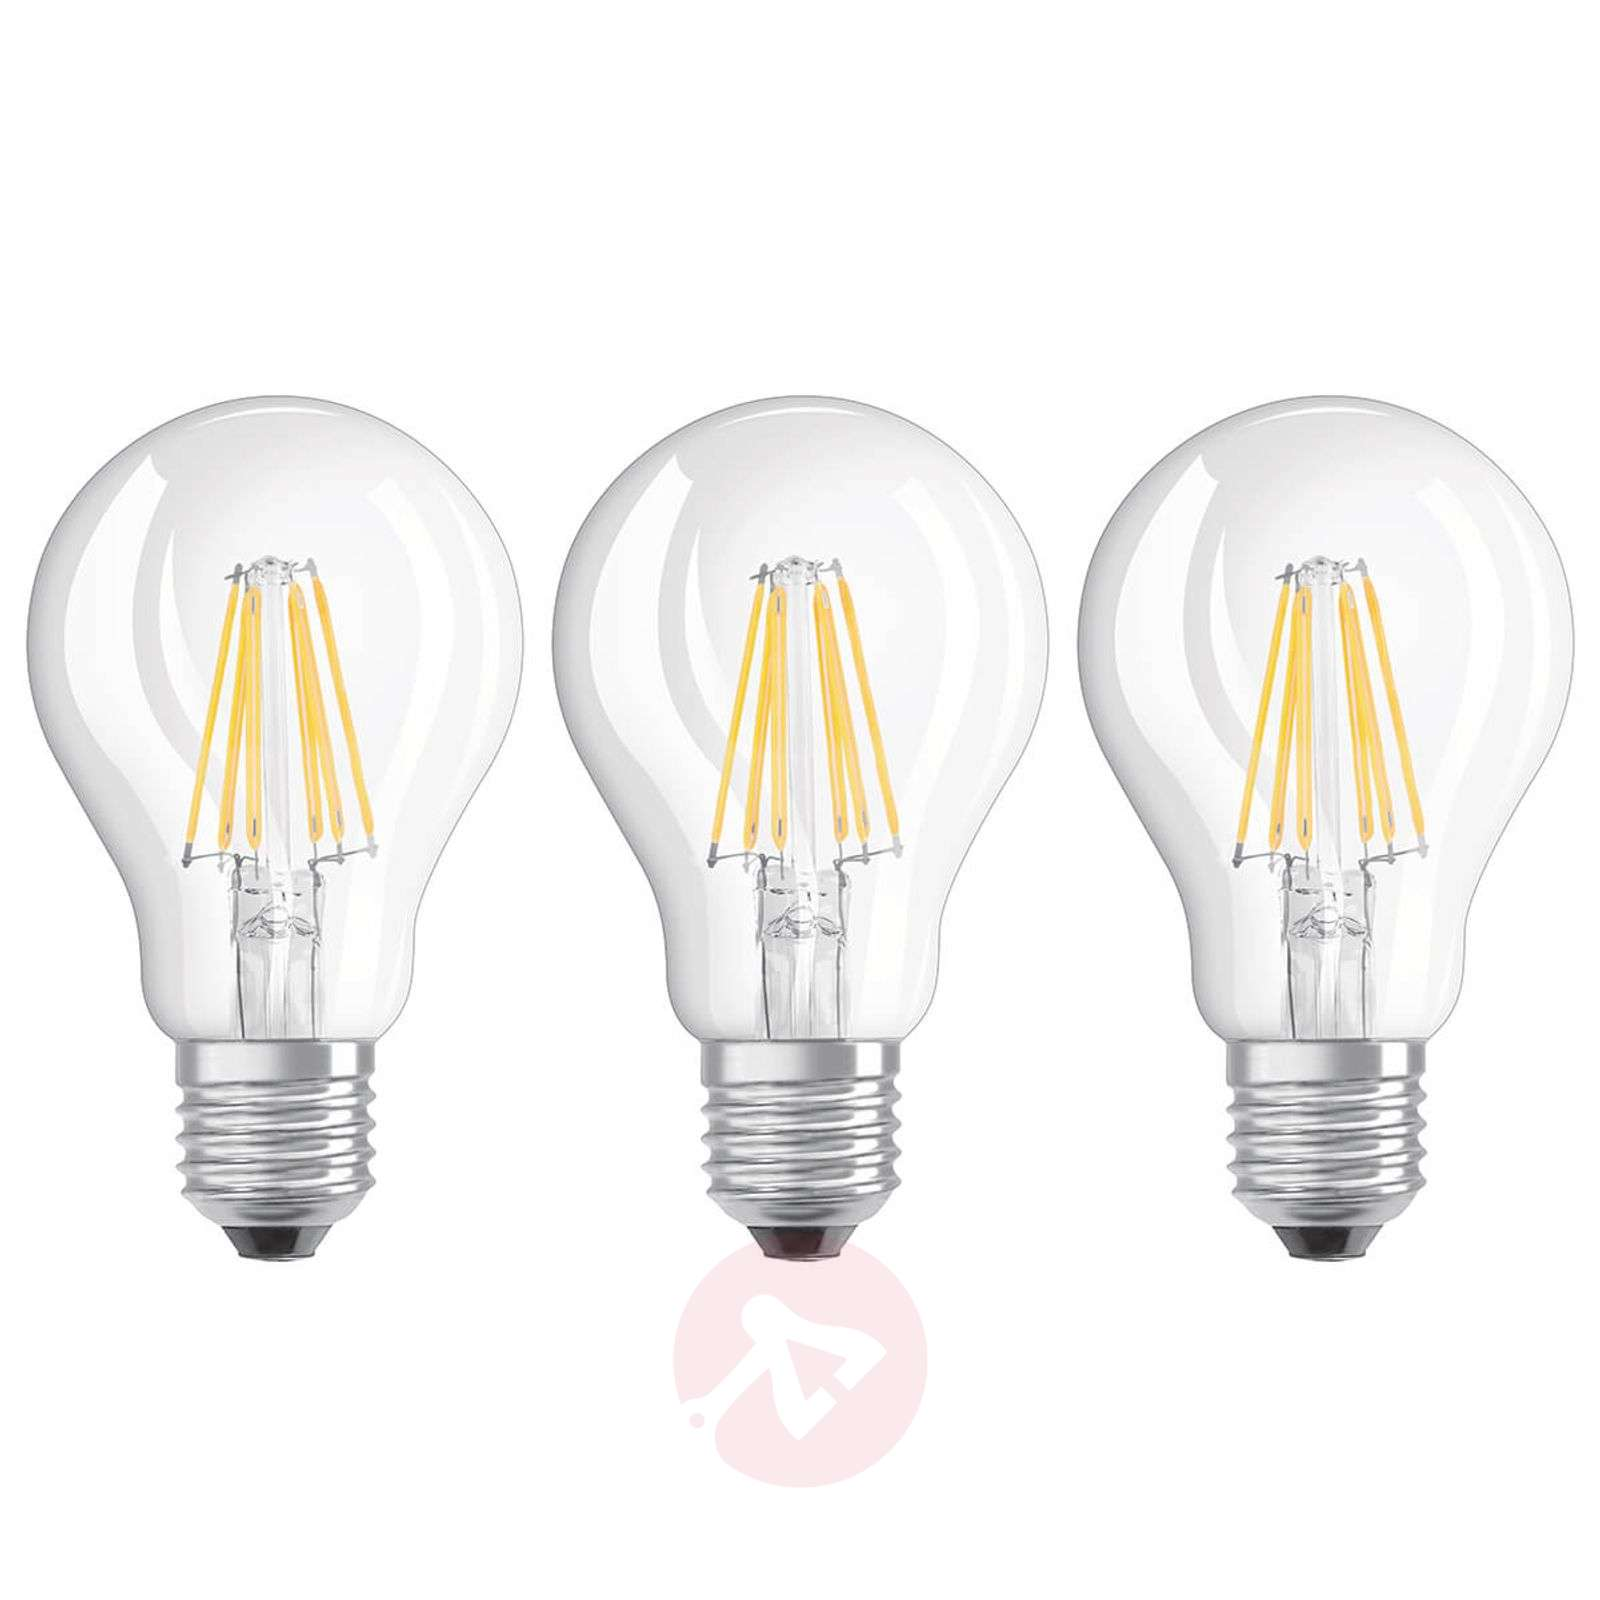 LED filament bulb E27 6 W, warm white, set of 3-7262097-01